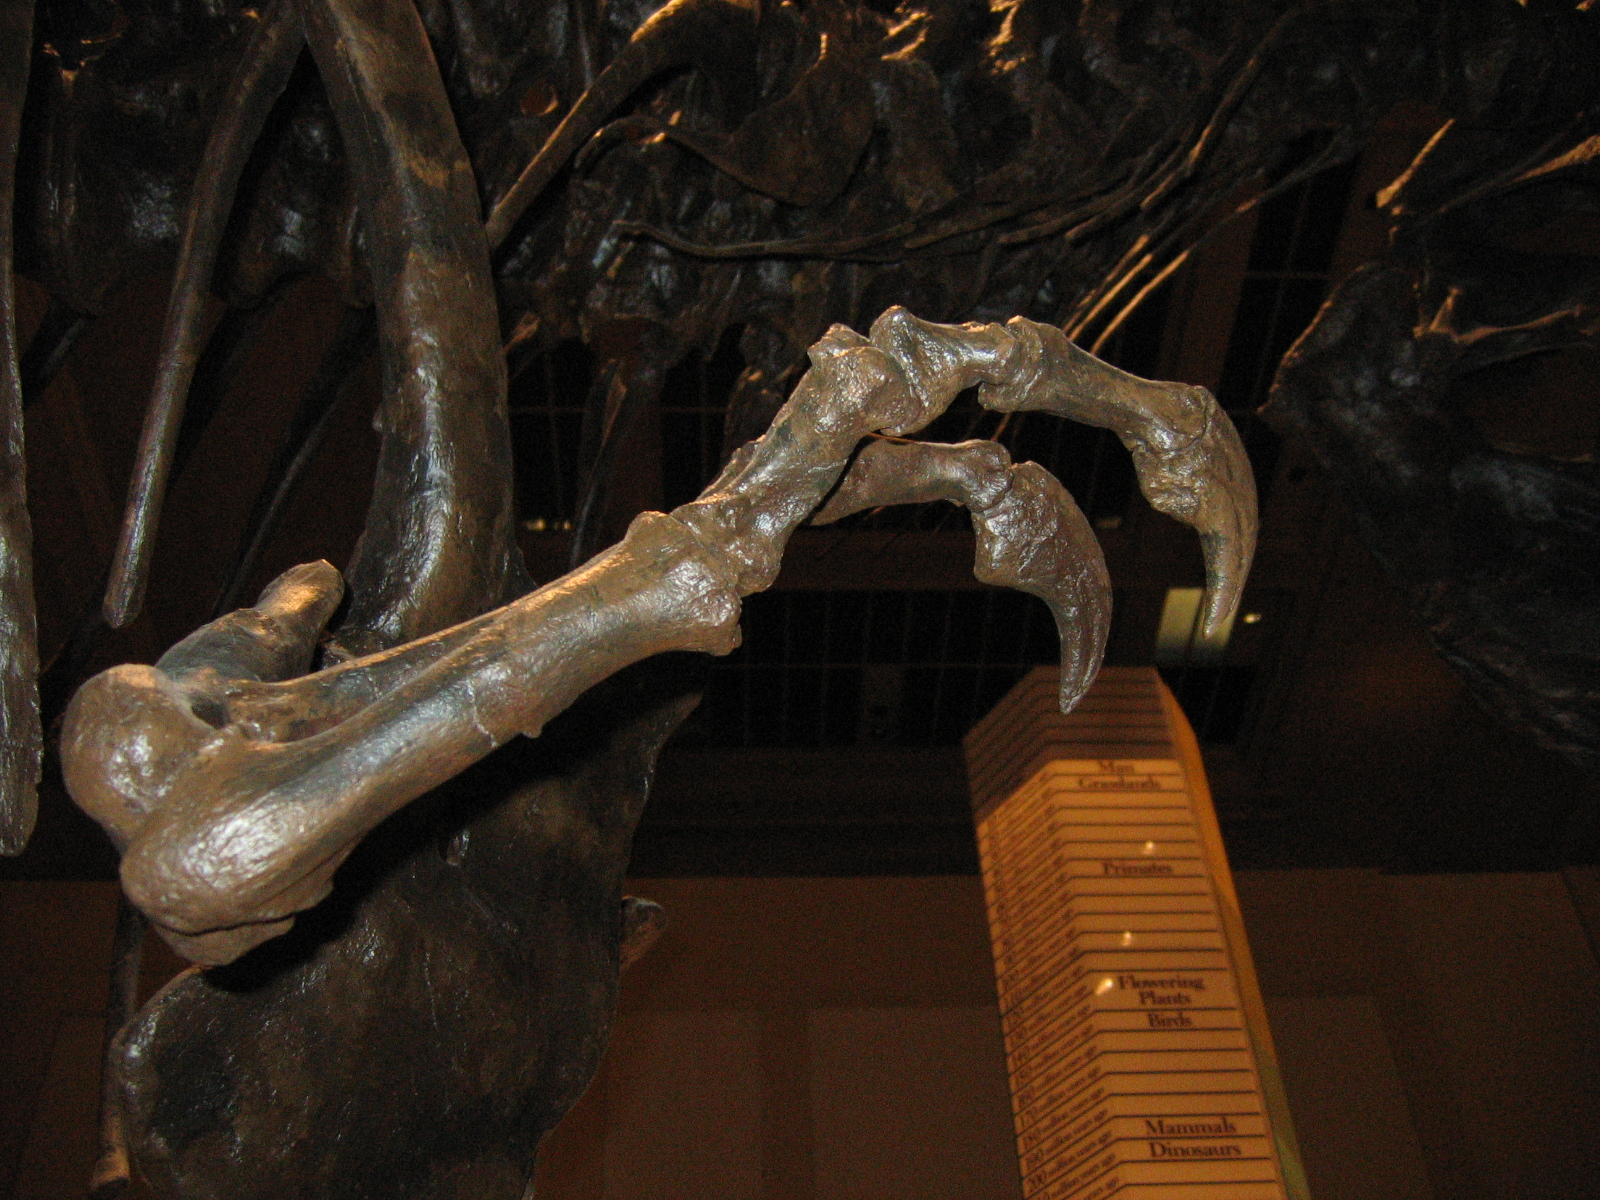 Nahaufnahme der Arme eines T. rex-Skeletts im National Museum of Natural History, Washington, D.C.